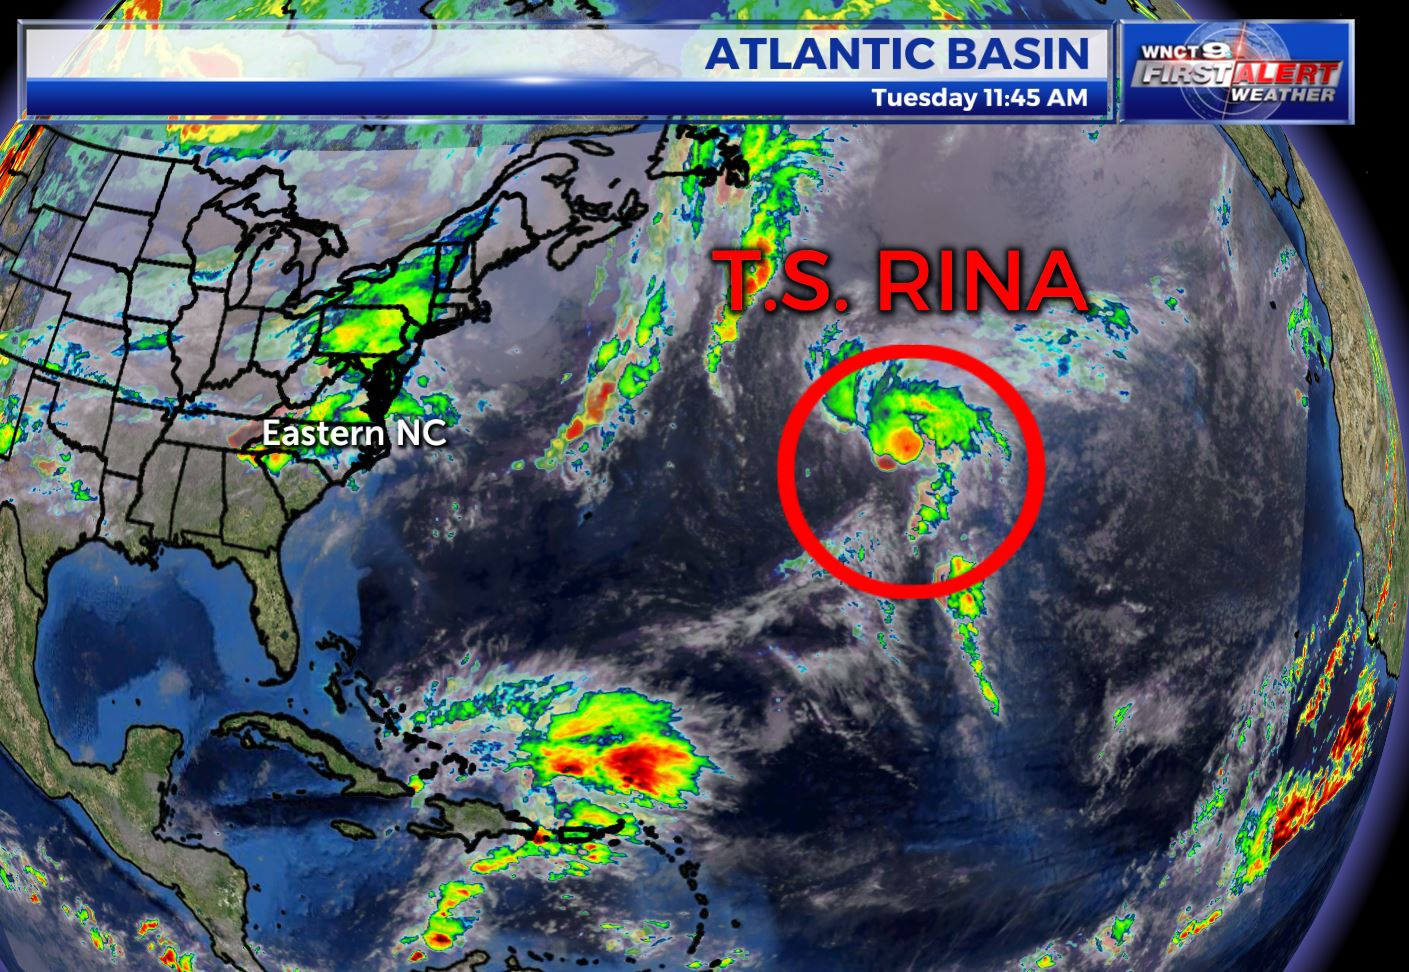 Rina tracking into the northern Atlantic